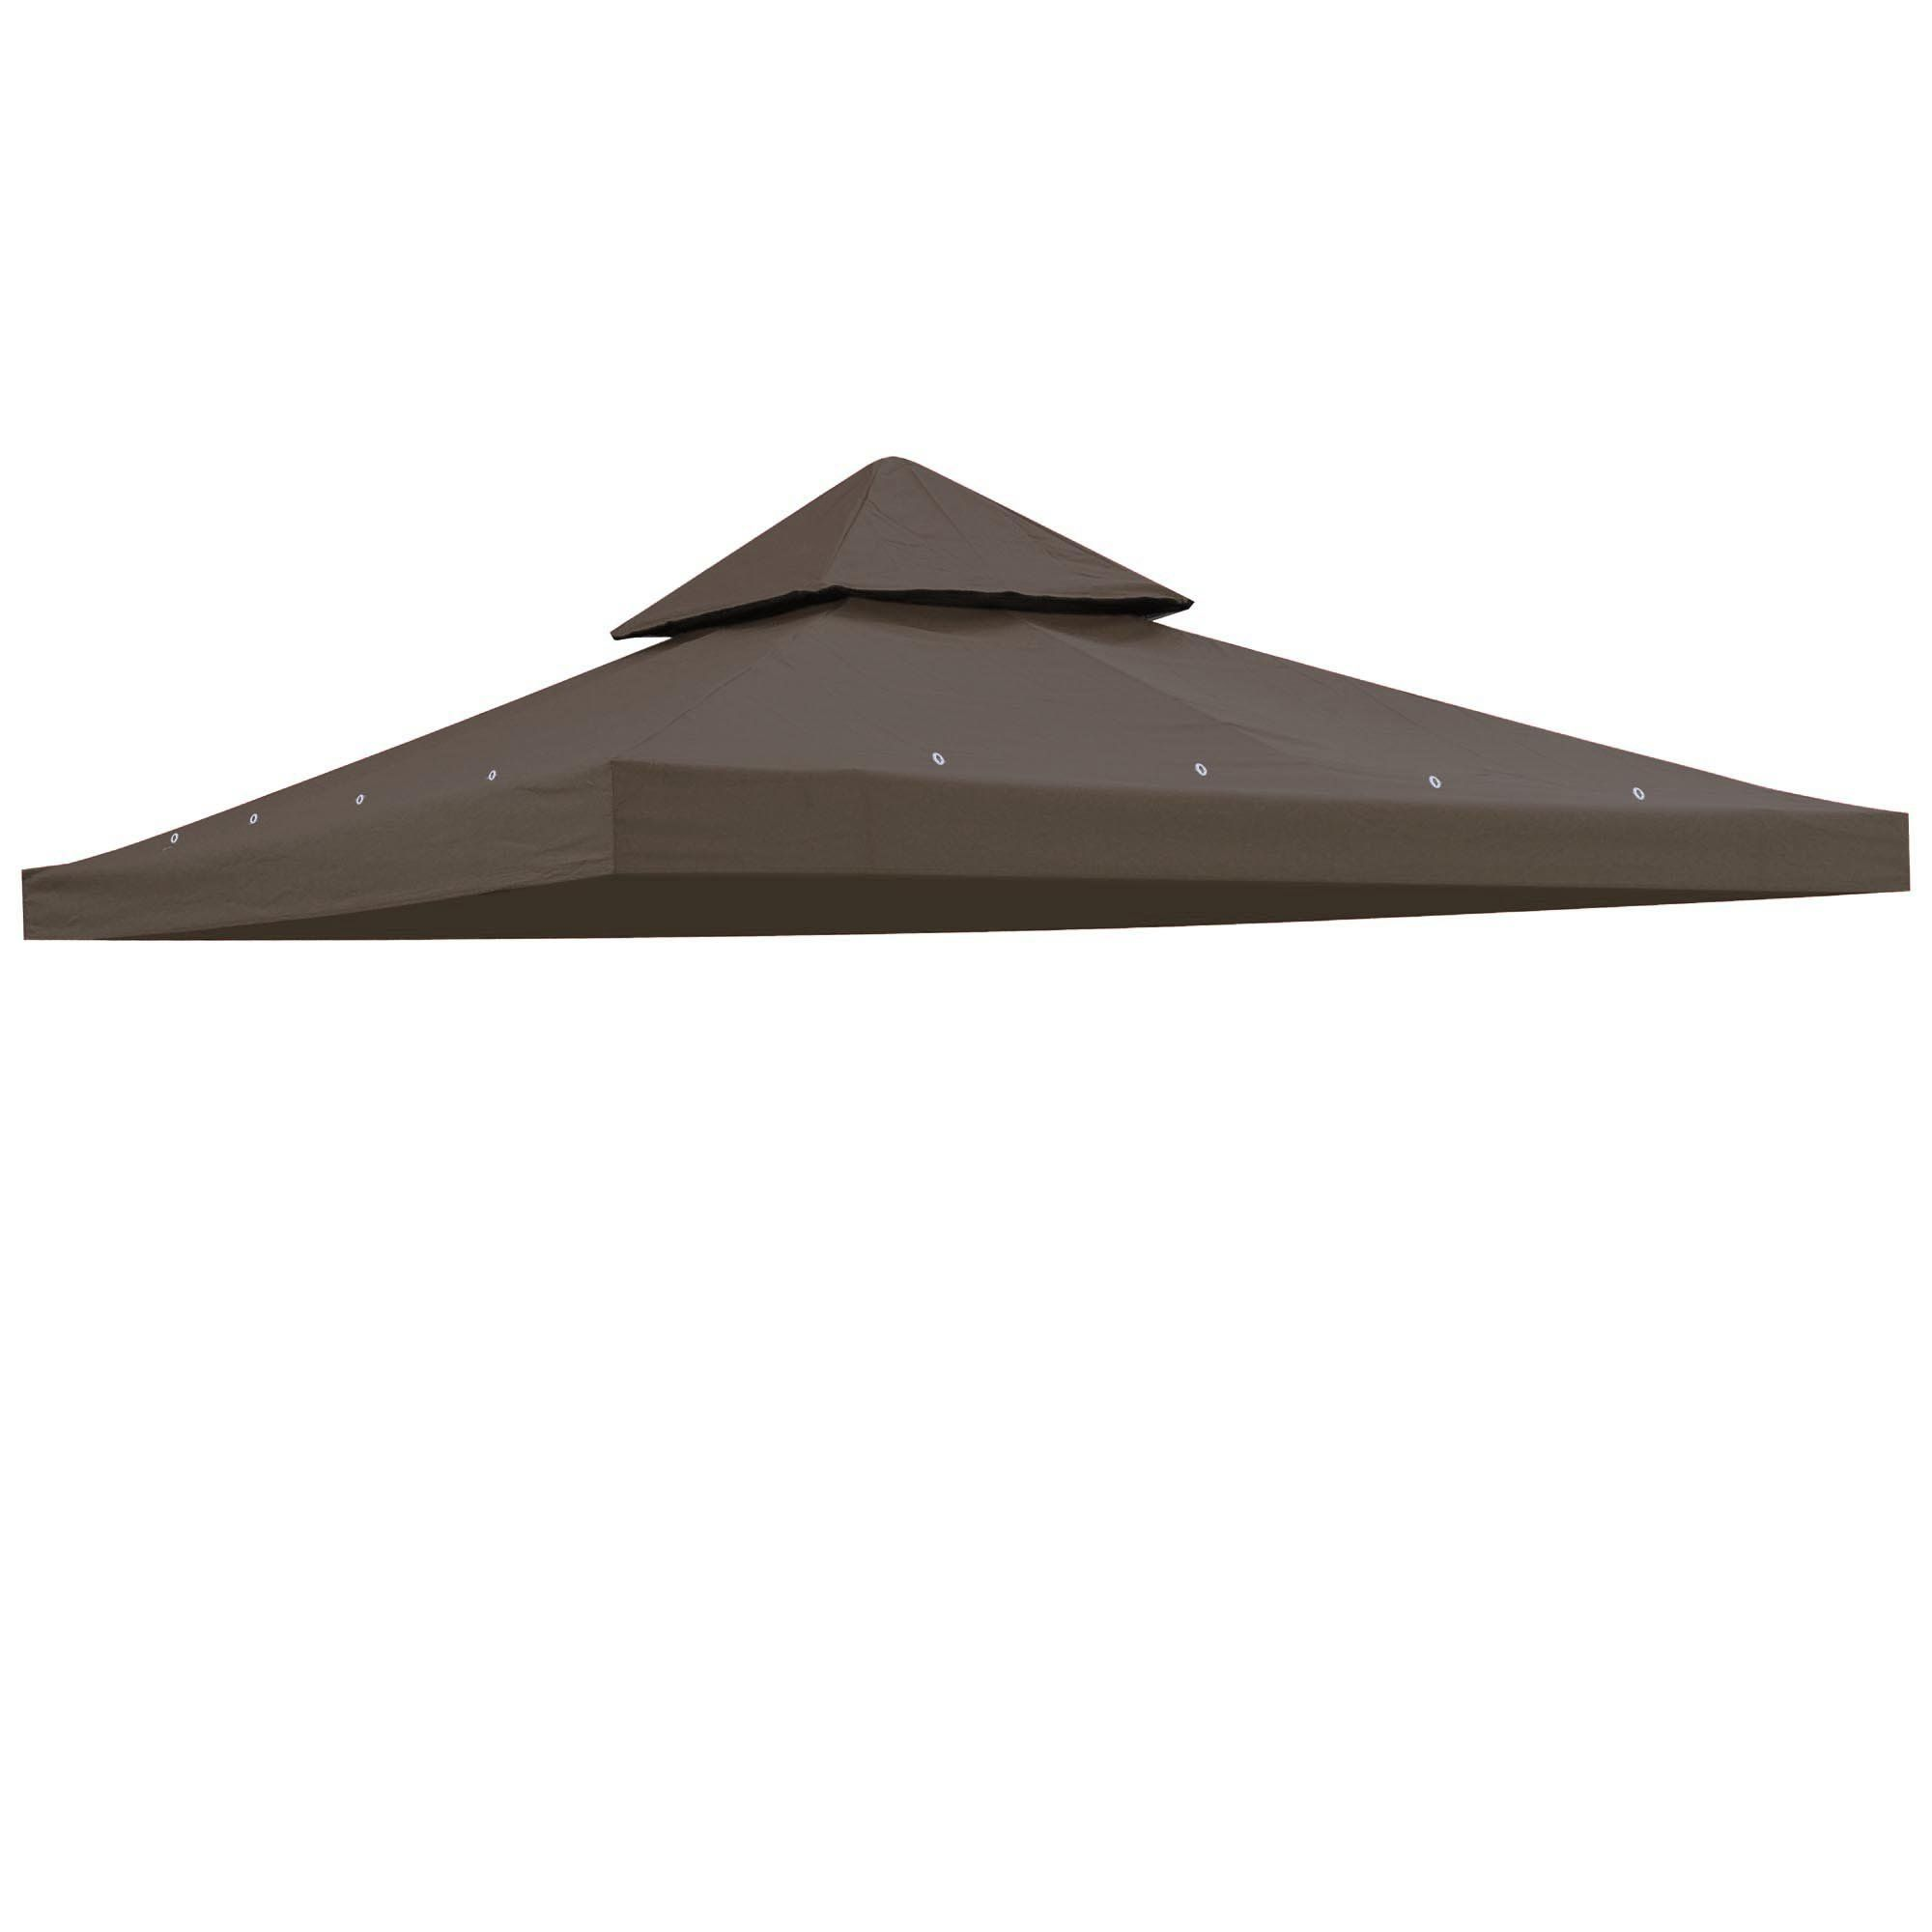 Yescom 8 X 8 Gazebo Top Canopy Replacement 2 Tier Uv30 200g Sqm Outdoor Patio Garden Cafe Cover More Info Could Be Found Patio Canopy Gazebo Gazebo Canopy